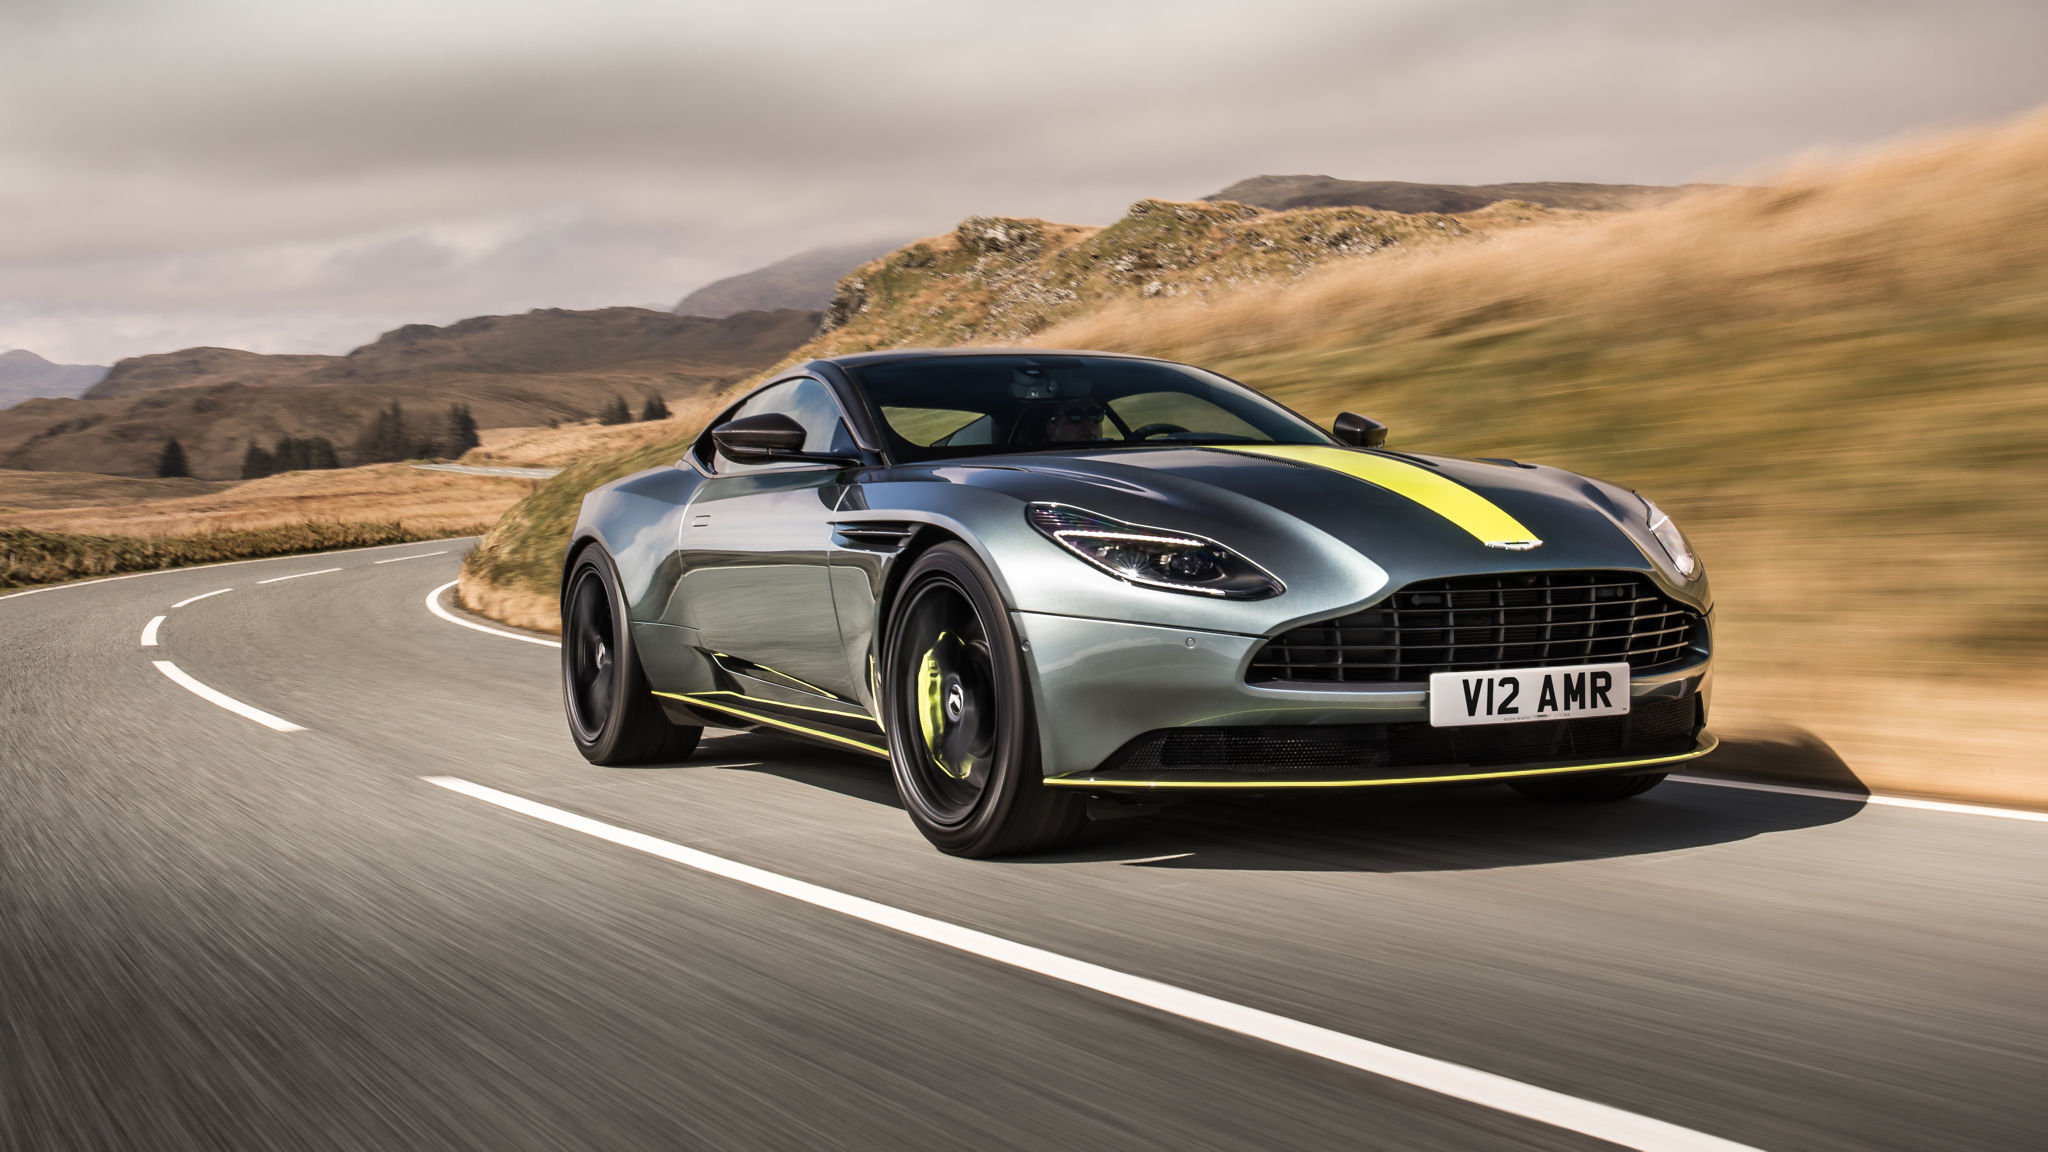 aston martin sets aside £30m for hard brexit as costs hit profits